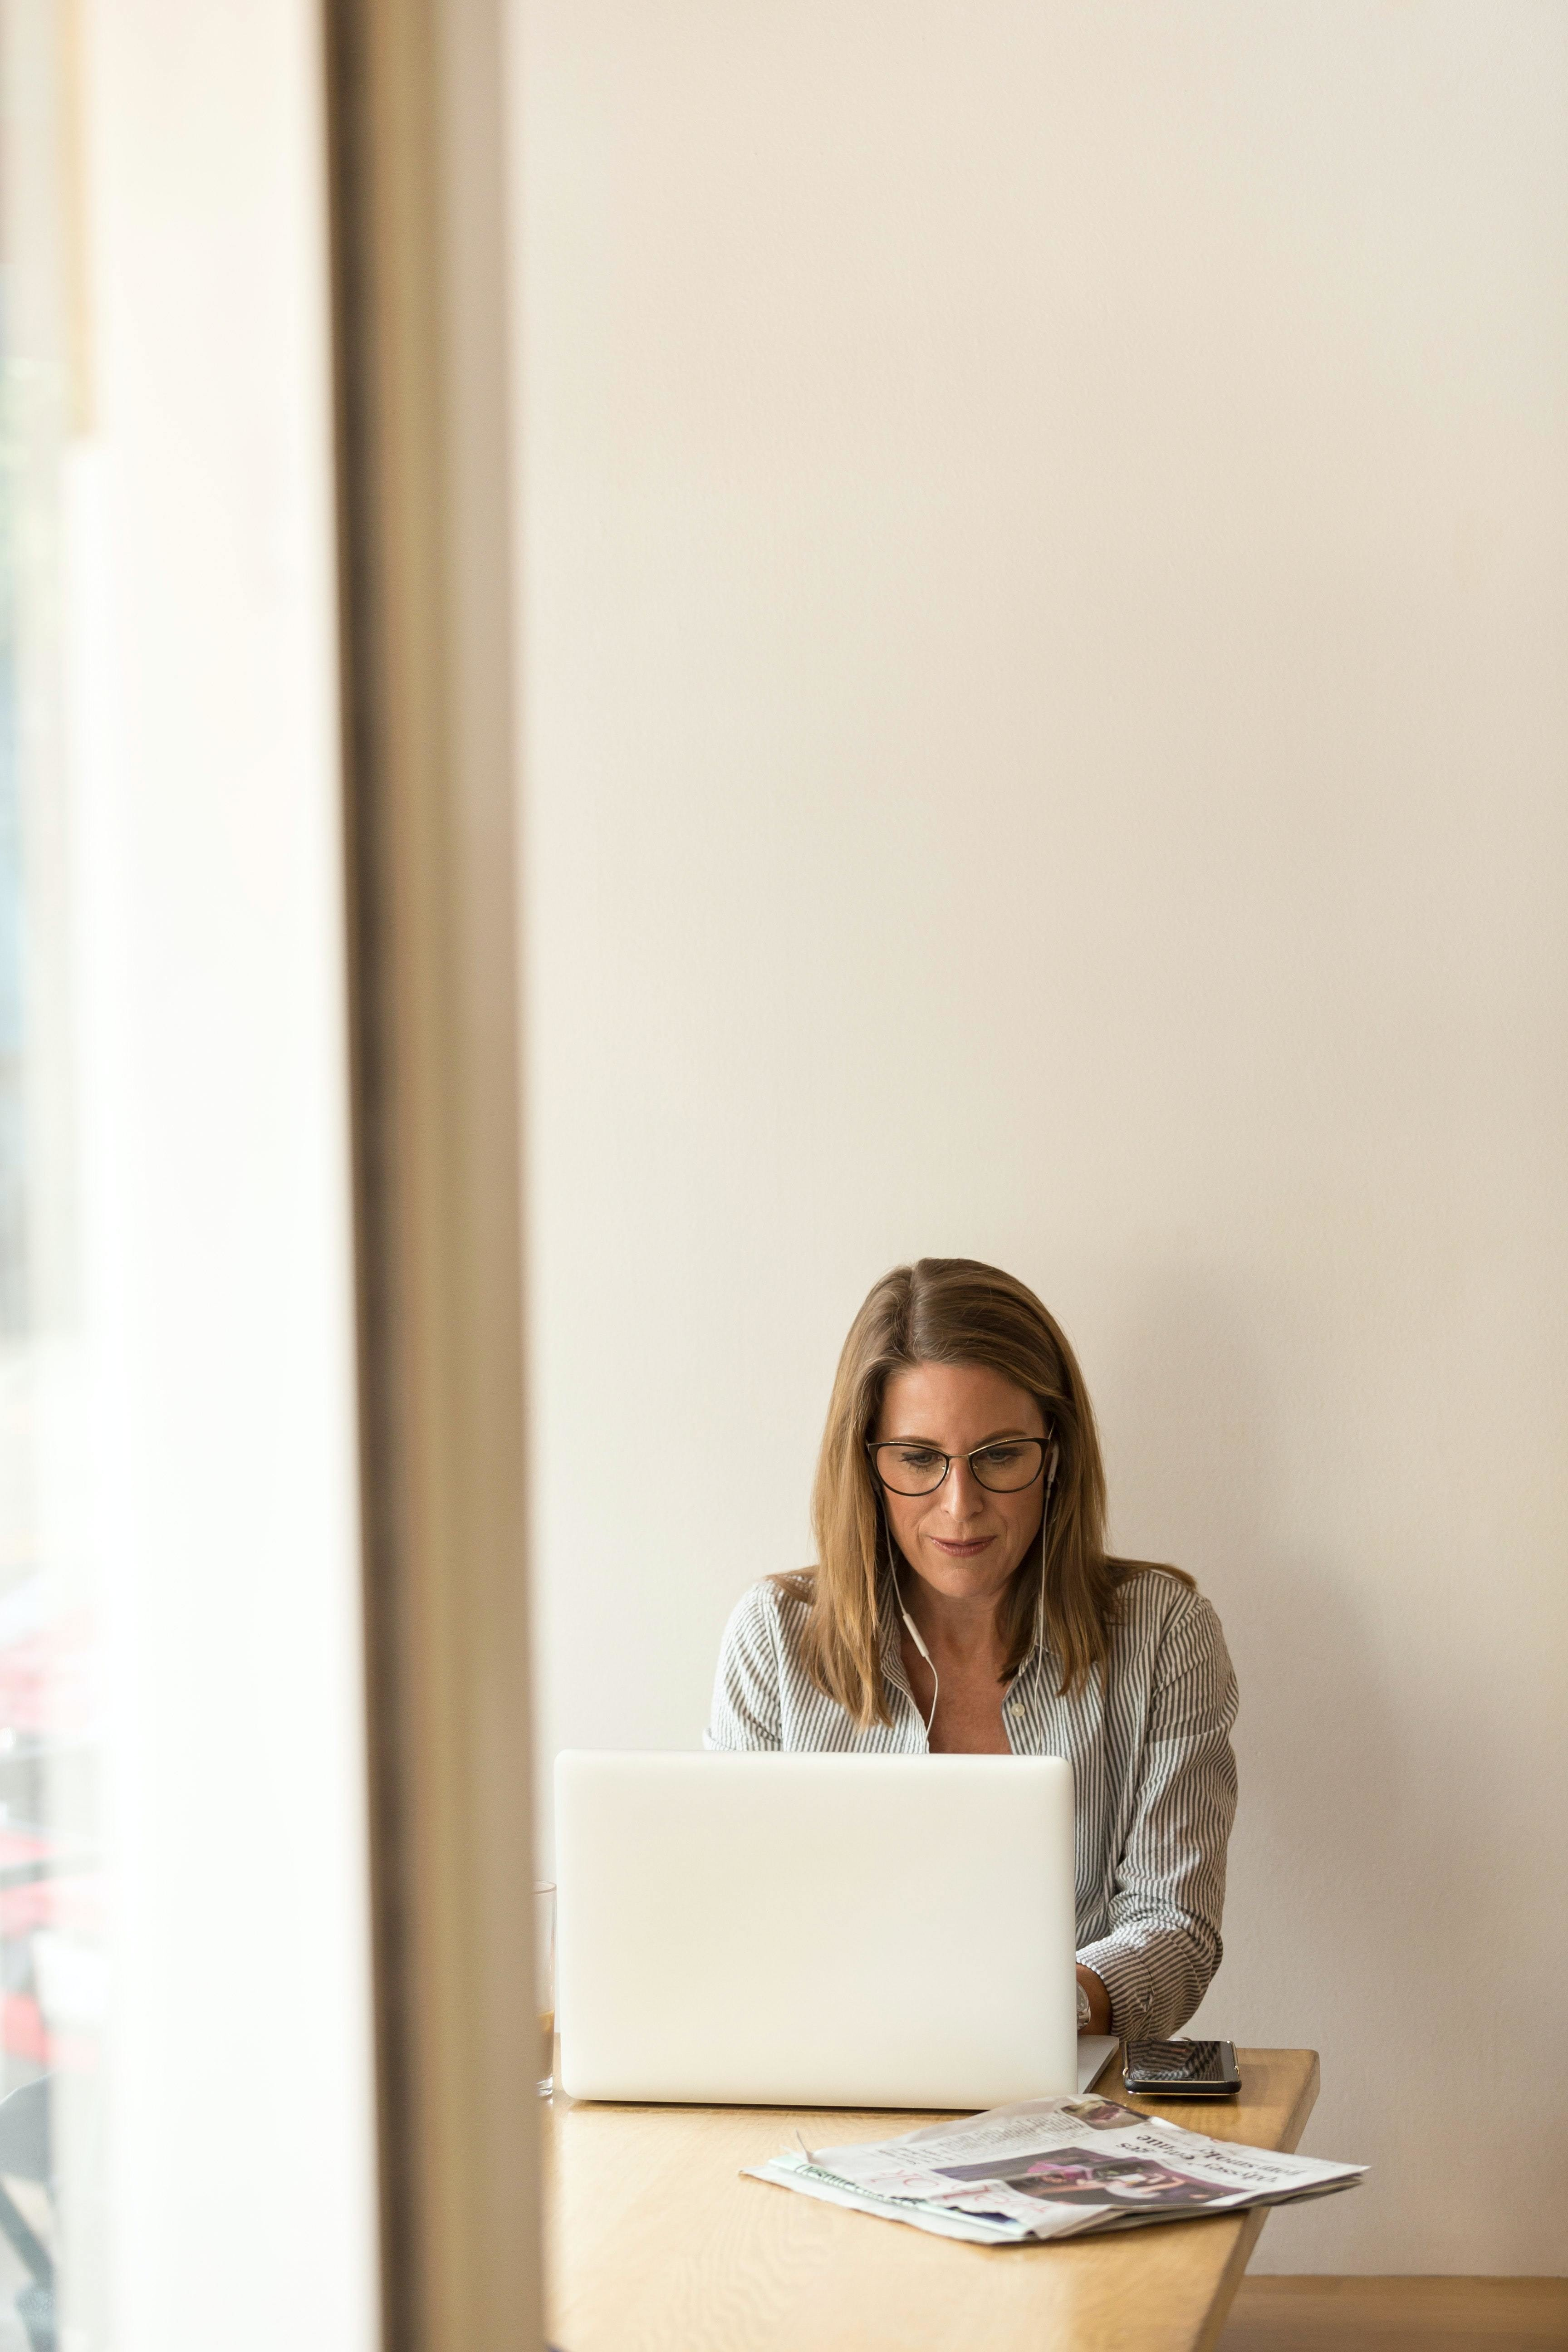 A women professionally dressed sits at a laptop.